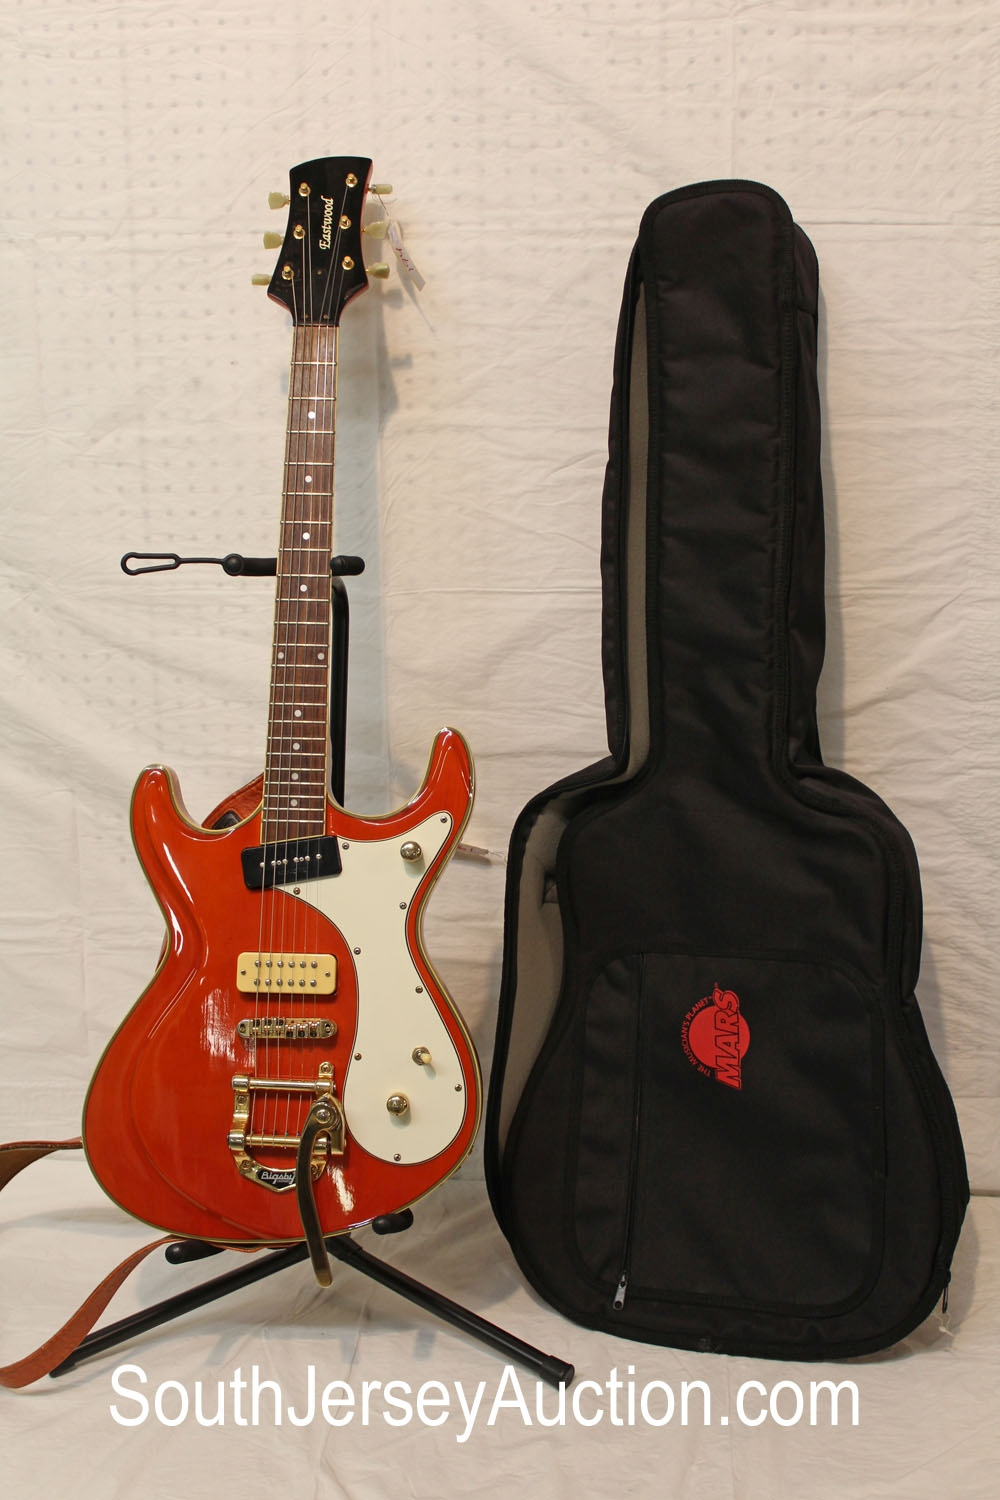 Eastwood in the tangerine top finish, gold hardware, Bigsby whammy bar, p-90 and humburcker pickups, with strap, with hard side bag in good condition with some buckle rash